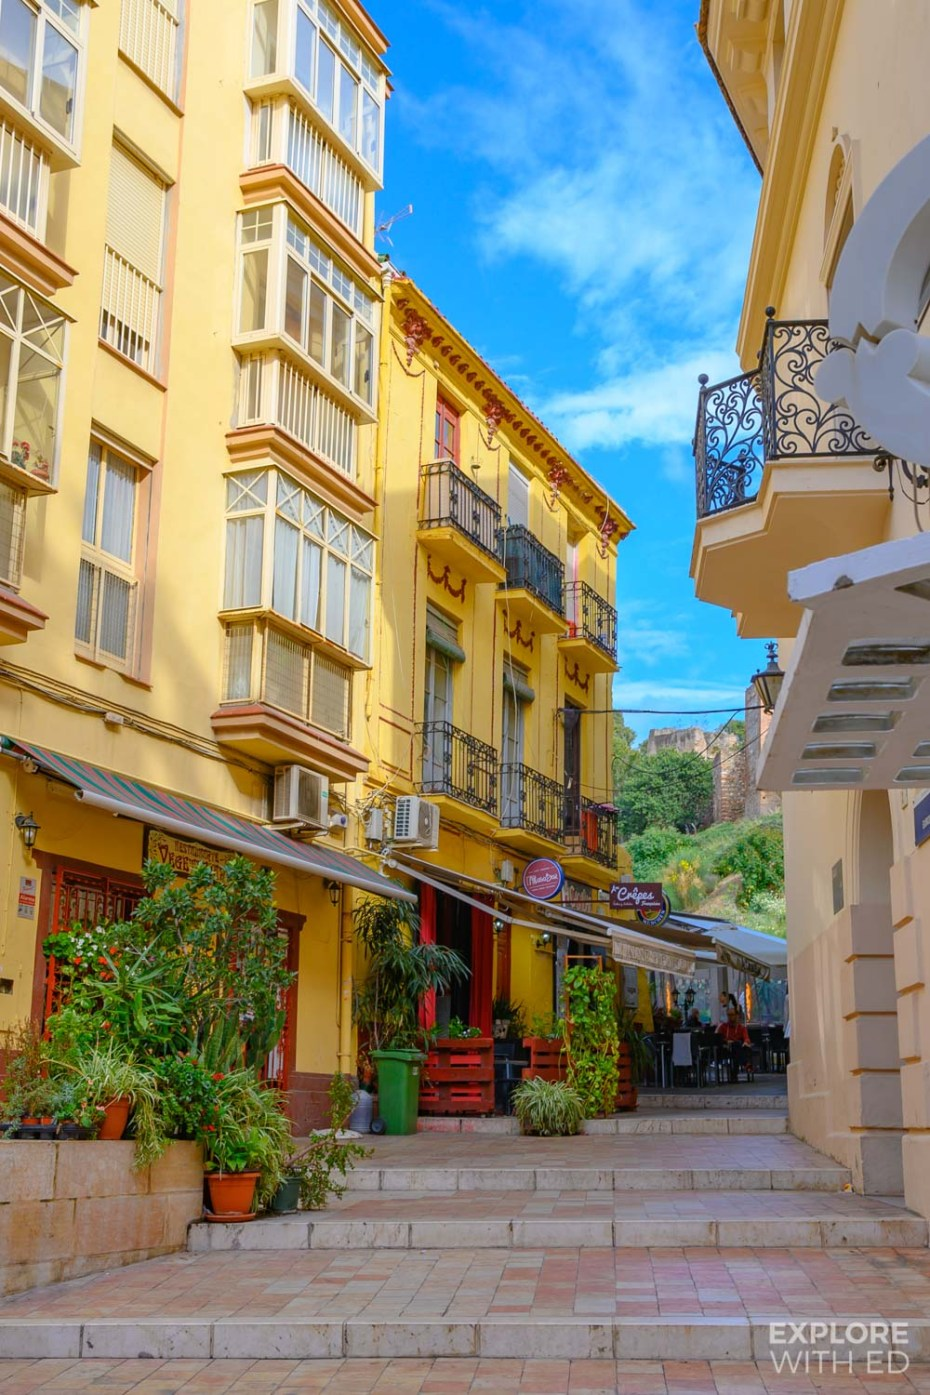 Charming side streets in Malaga, Spain